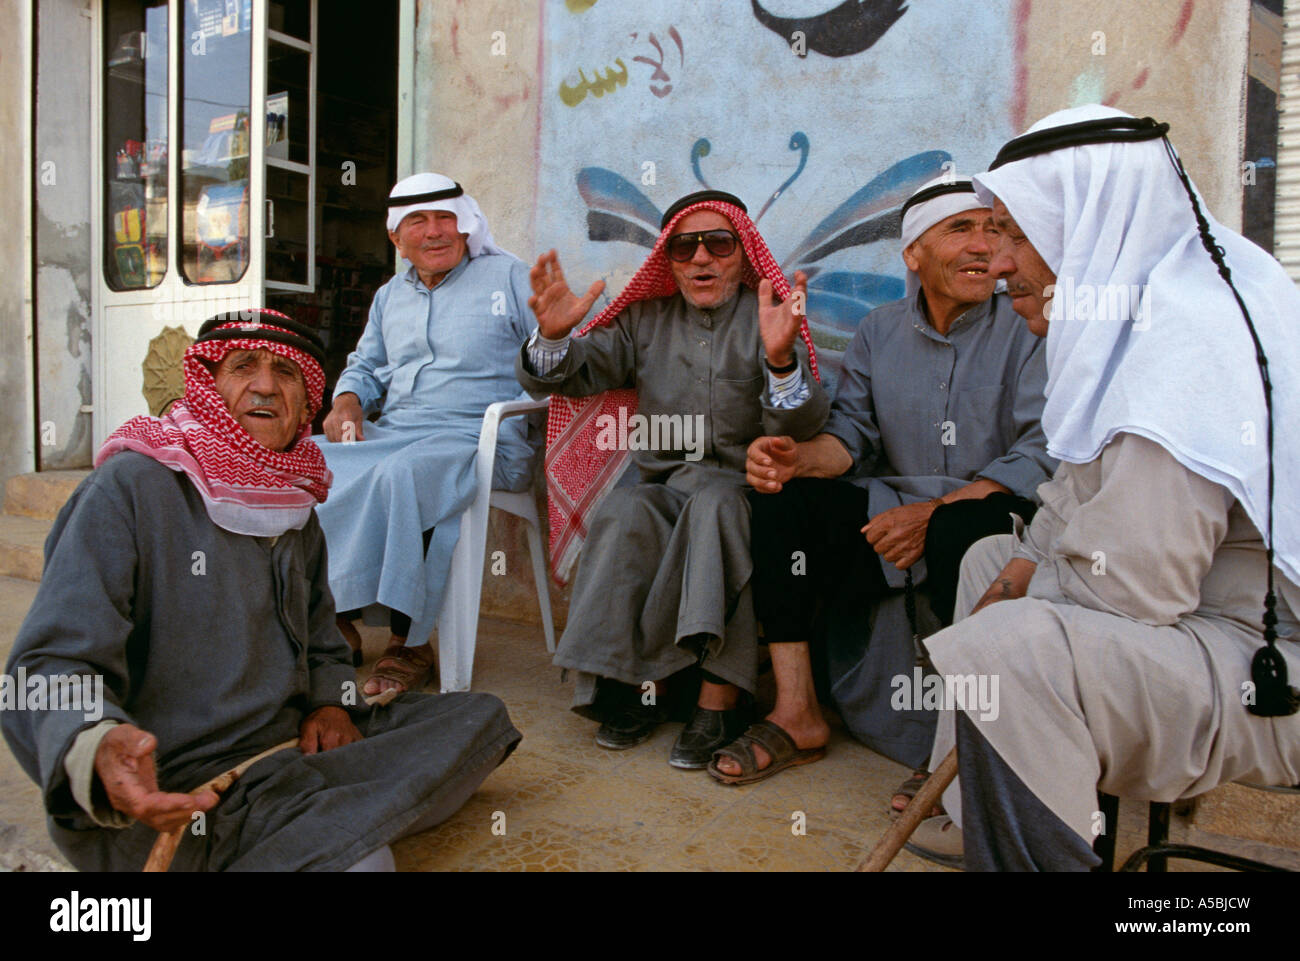 Men gathering, partially obscured mural of Hafez Al Assad in background, Syria Stock Photo